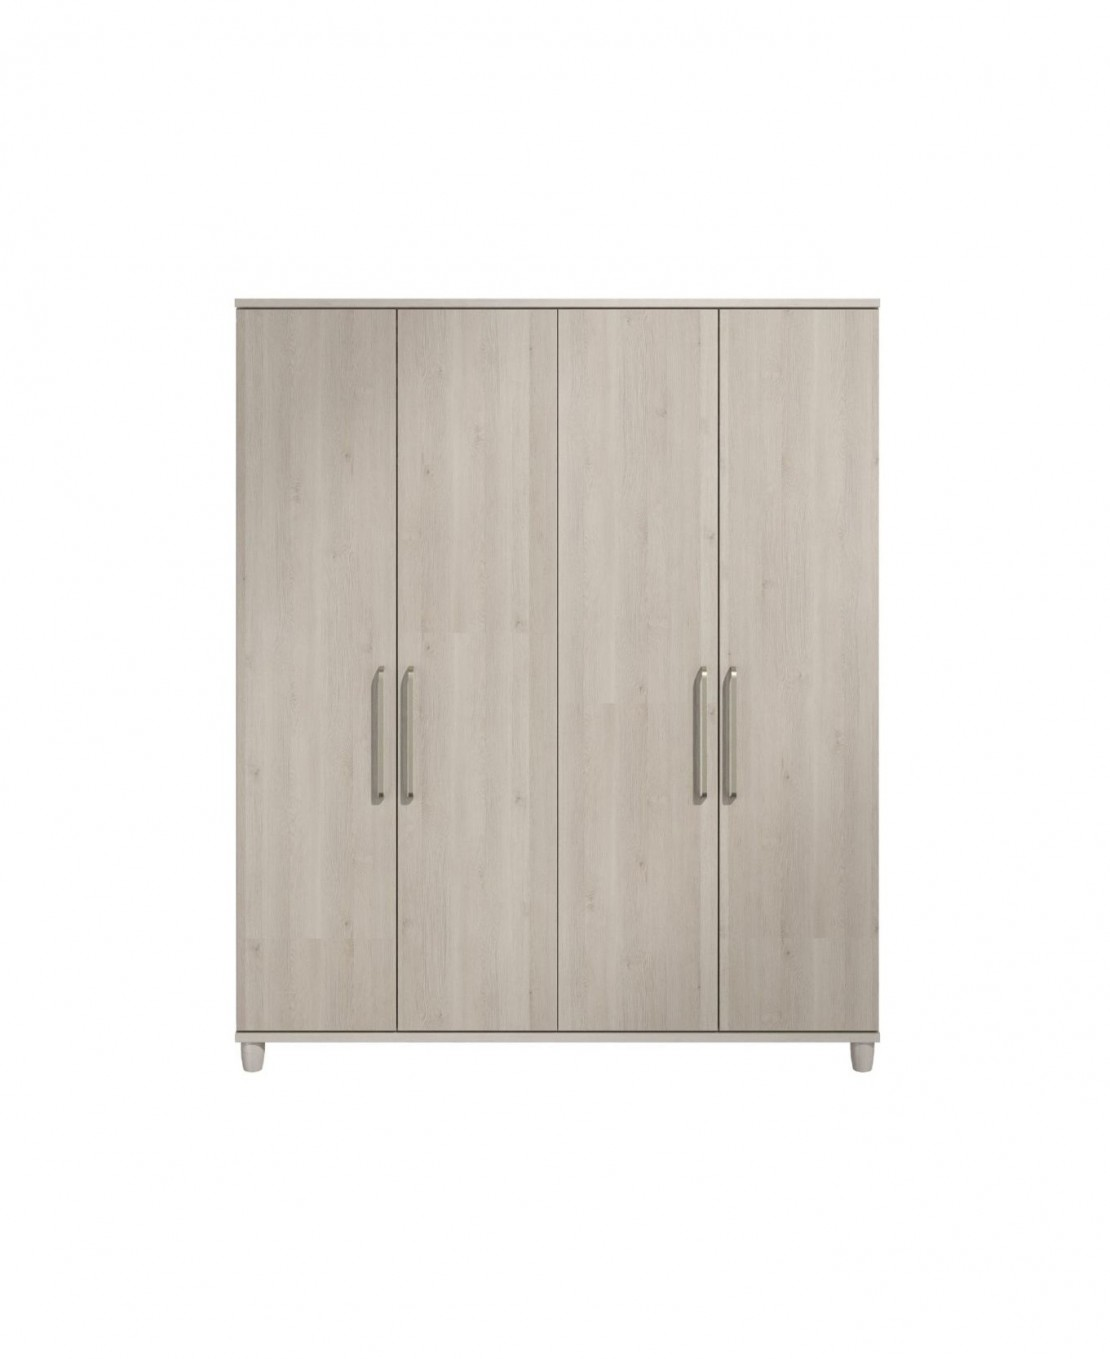 /_images/product-photos/kt-furniture-deco-4-door-robe-cappuccino-wood-grain-with-elm-carcase-a.jpg